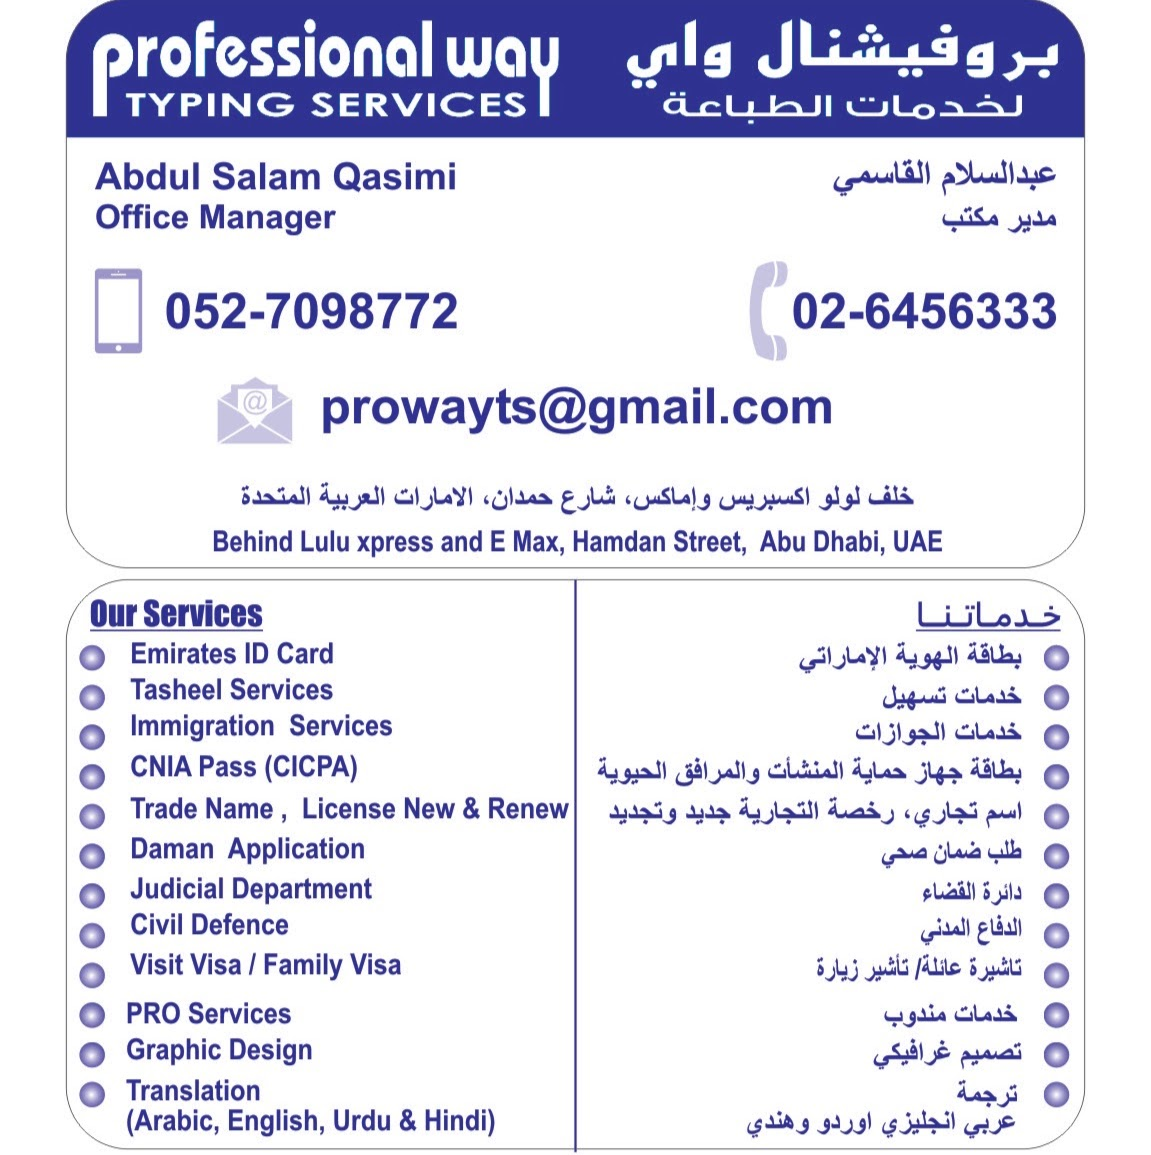 PROFESSIONAL WAY TYPING SERVICES